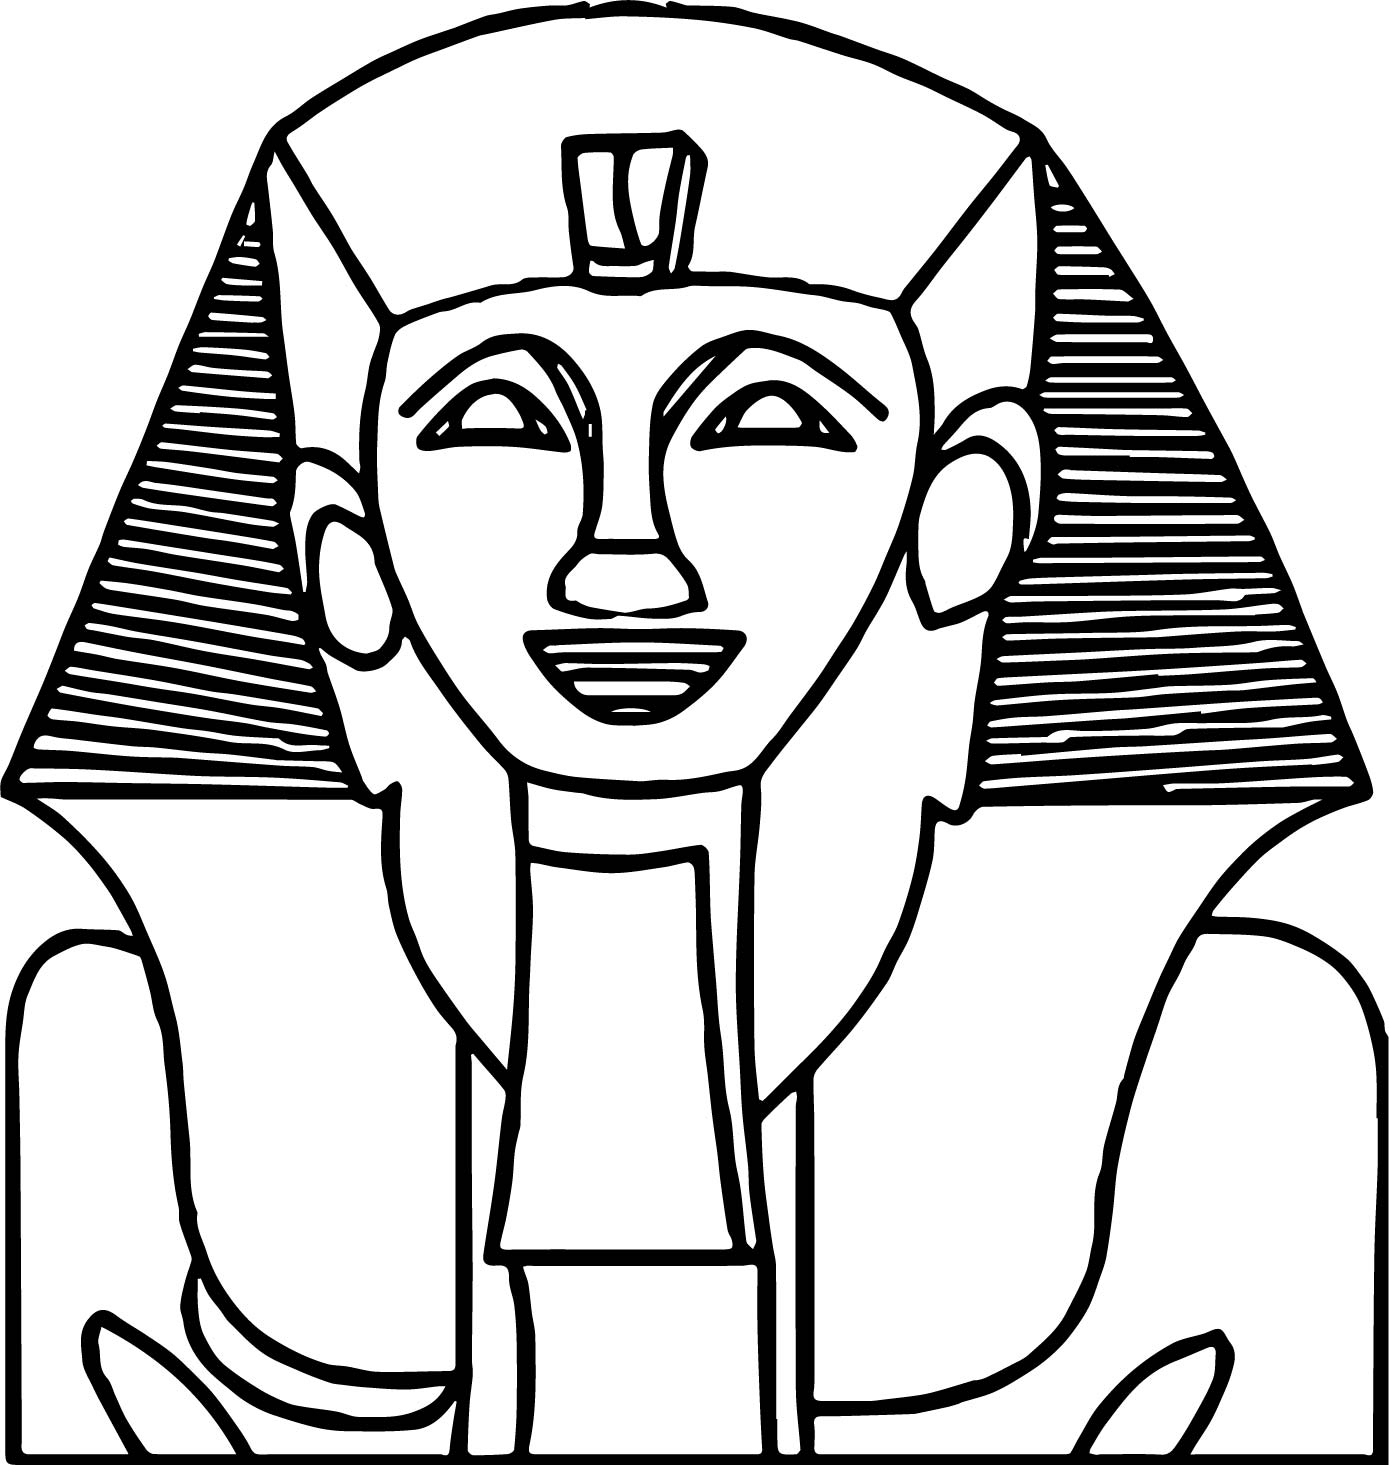 Smile ancient egypt statue coloring page for Egypt coloring page